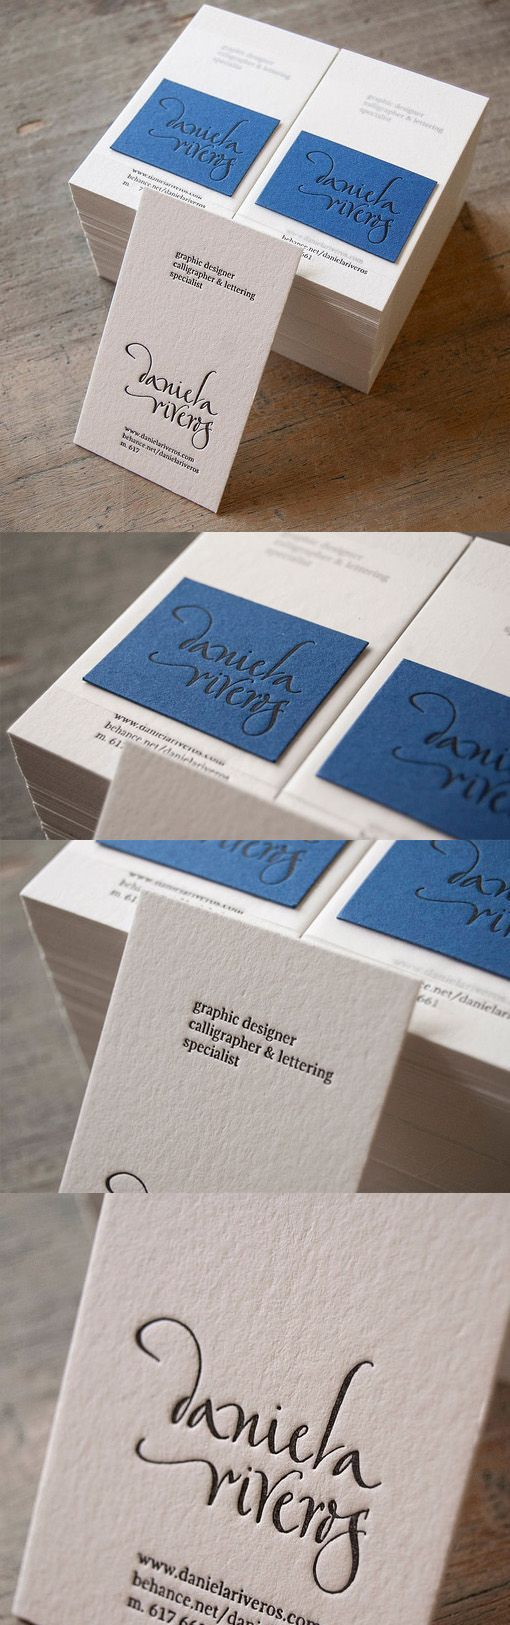 Elegant Hand Drawn Typography On A Layered Letterpress Business Card